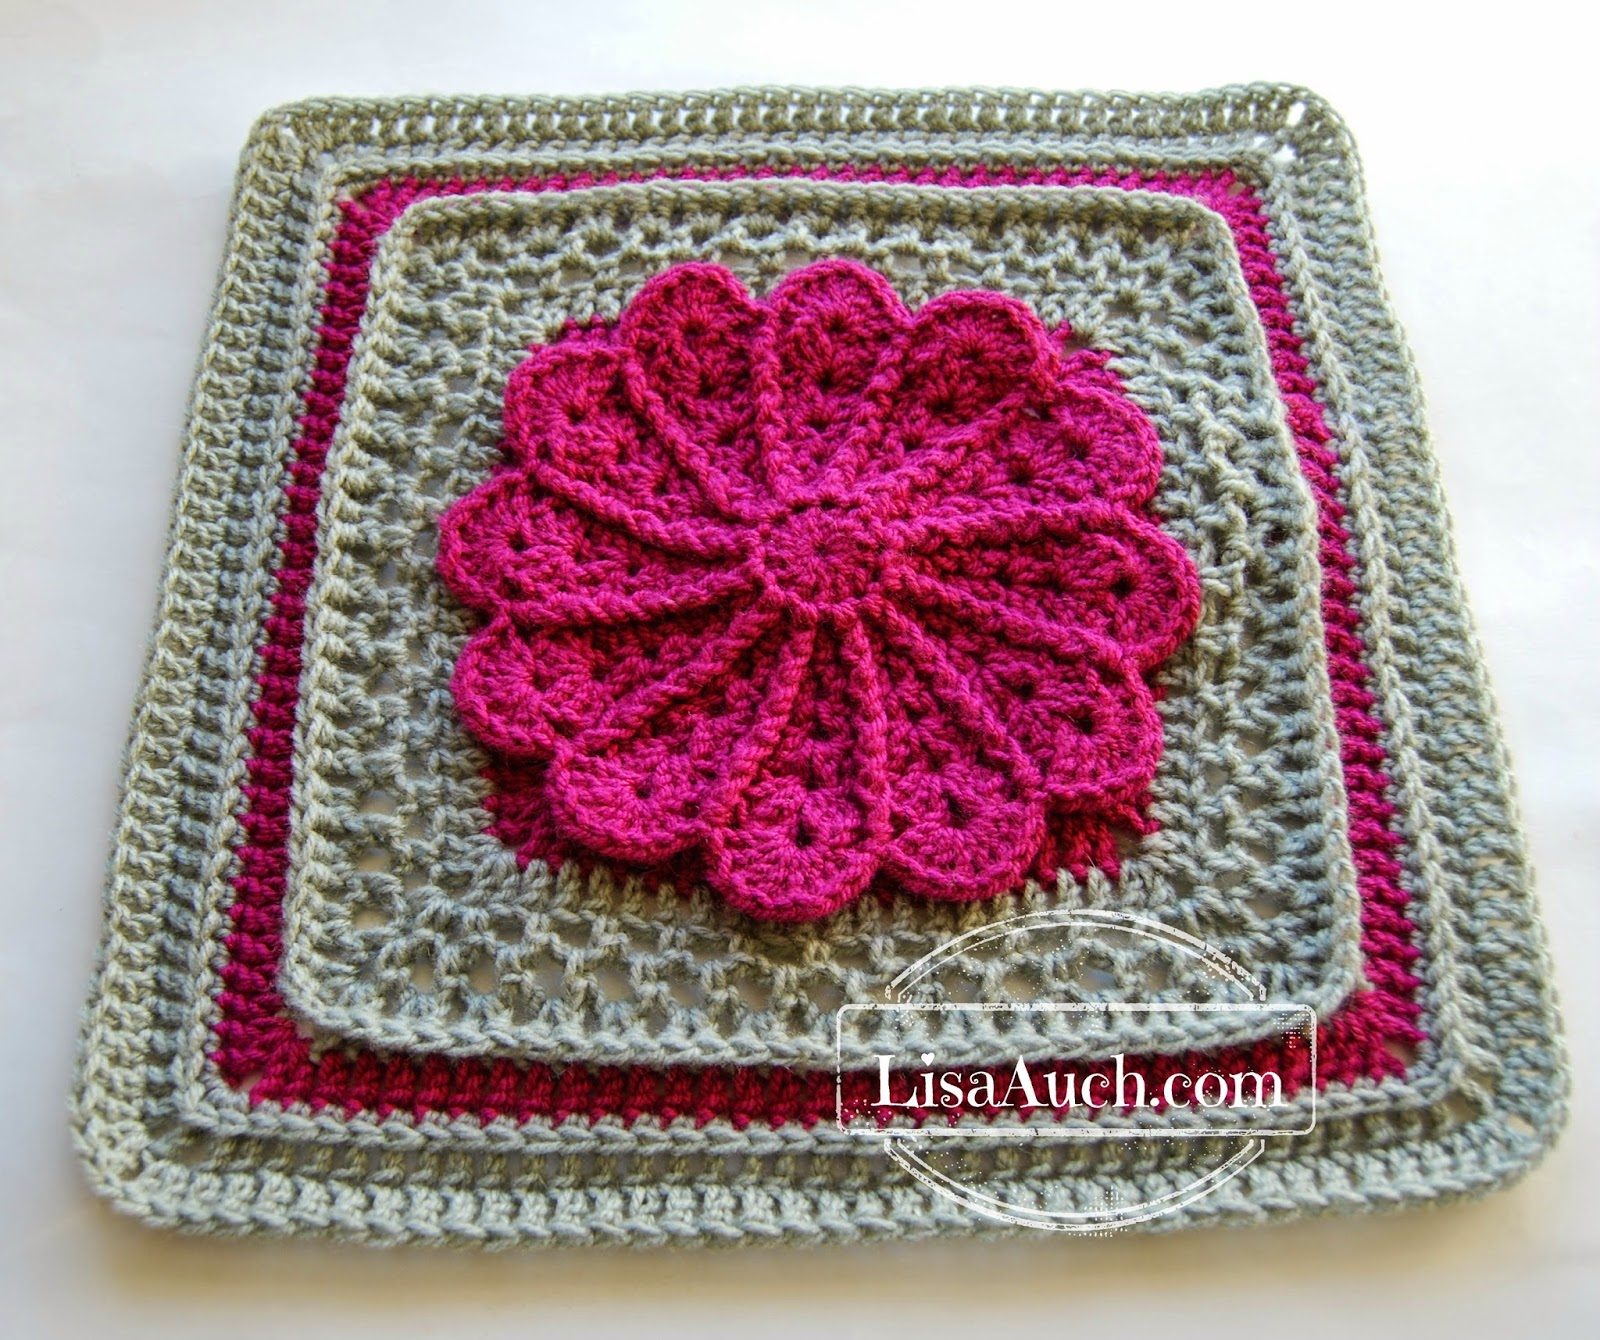 Crochet Stitches To Inches : ... American Crochet Afghan Crochet~Along: Square #3! - American Crochet